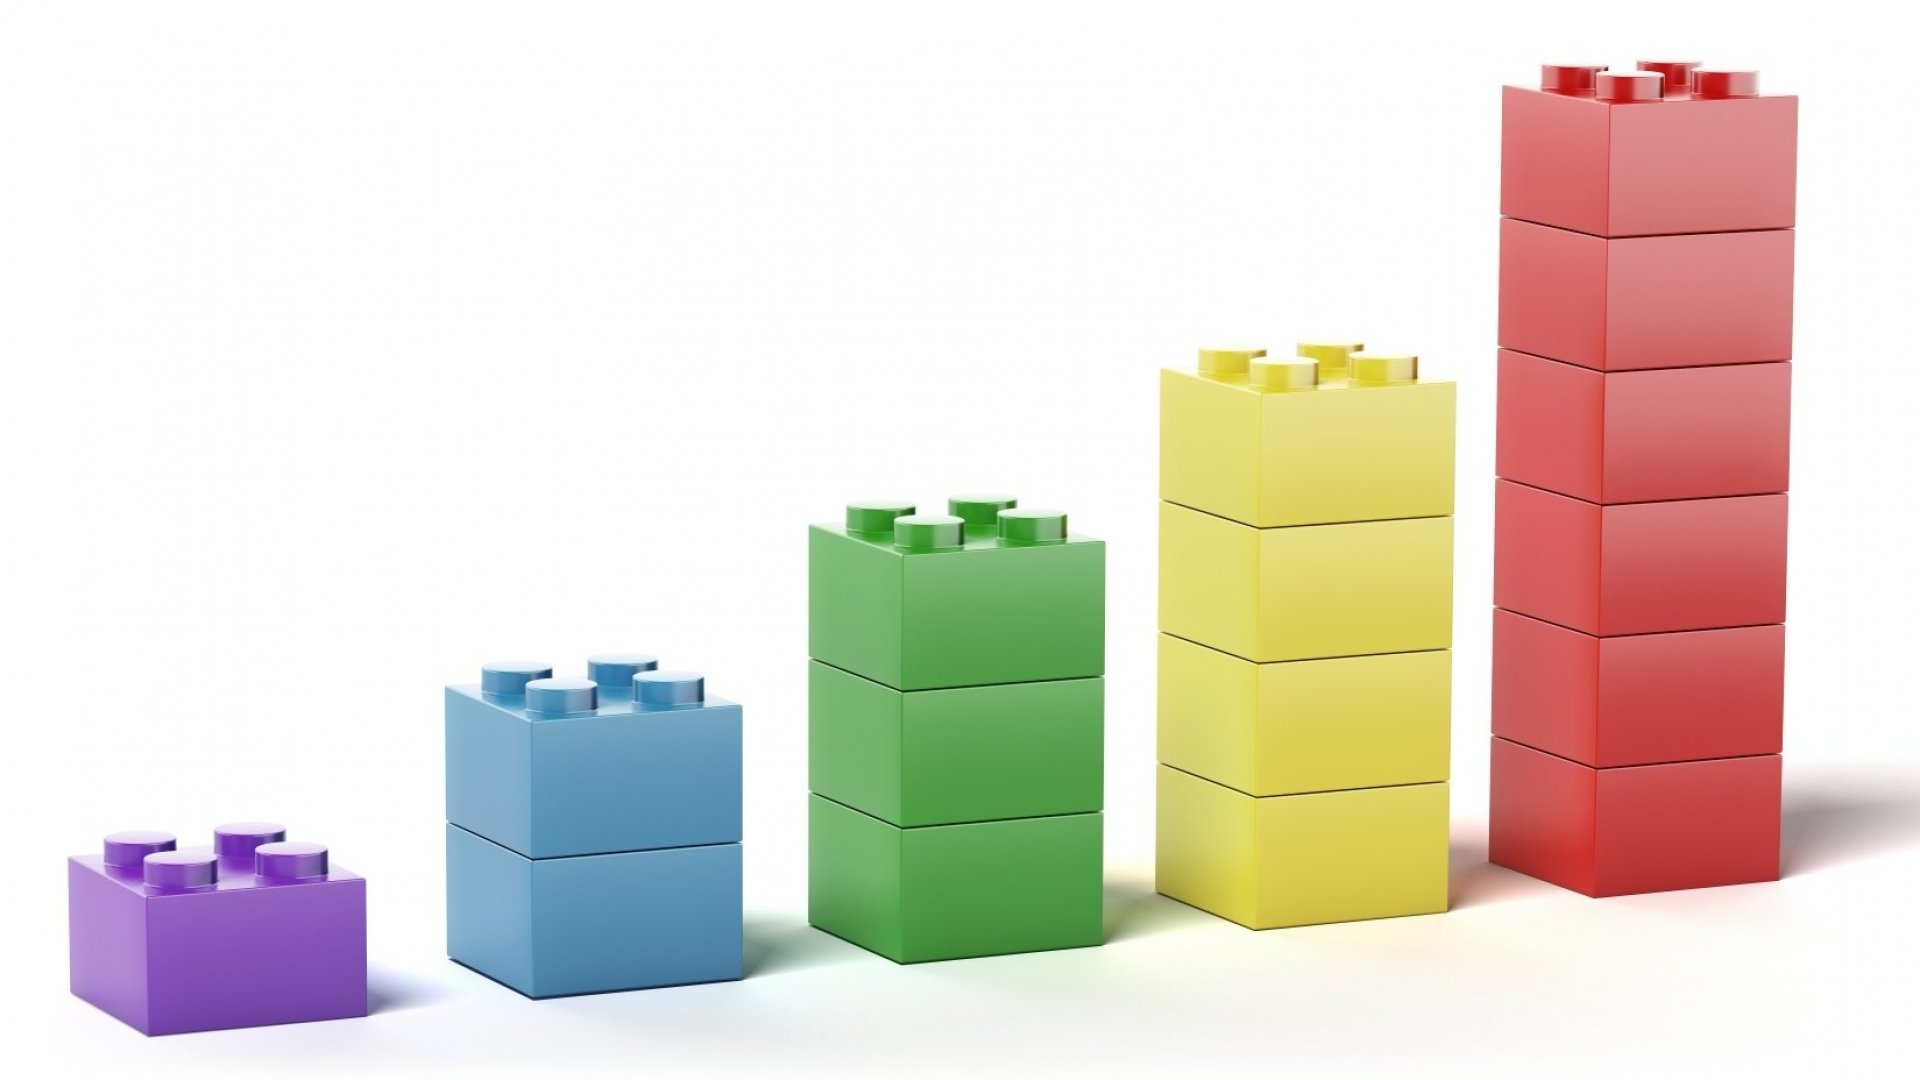 <b>Learning From LEGO: Sustainable Growth Is Harder Than You Think</b>